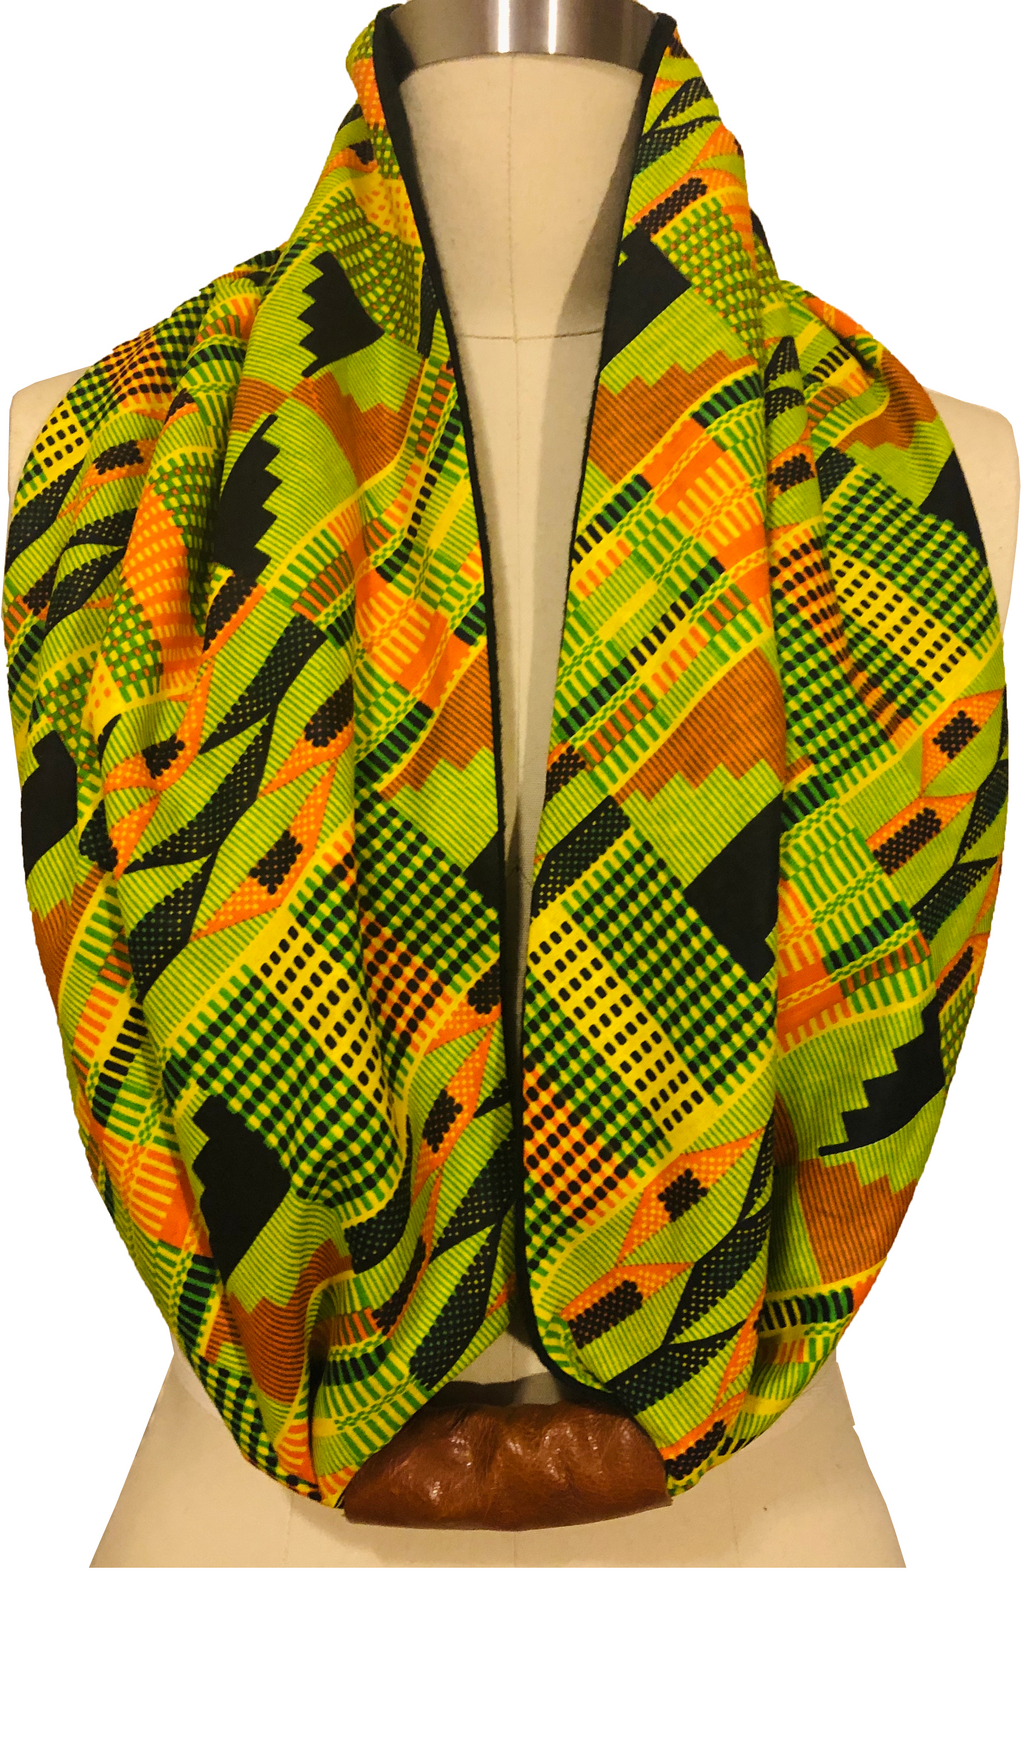 Unisex Kente Print Cotton and Fleece Lined Infinity Scarf with Leather Accent